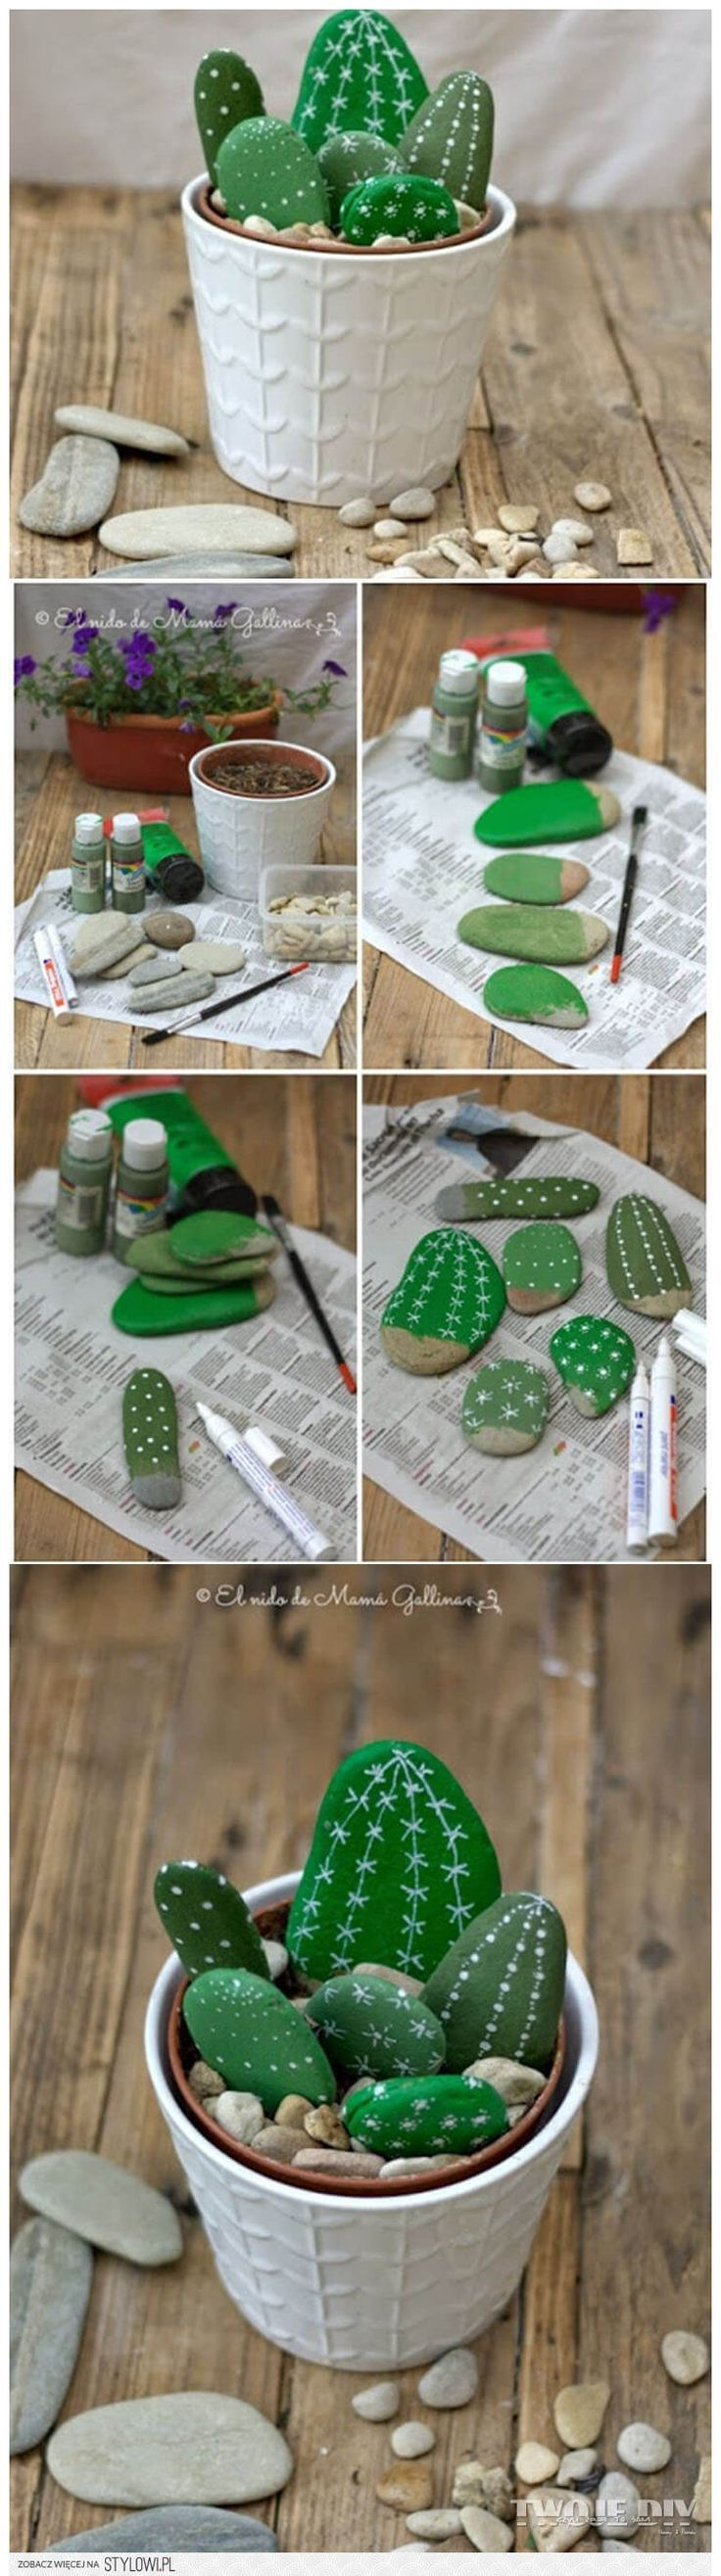 27 Creative DIY Home Decor Ideas with Pebbles and River Rocks That Will Find a Good Use for Your Stone Collection